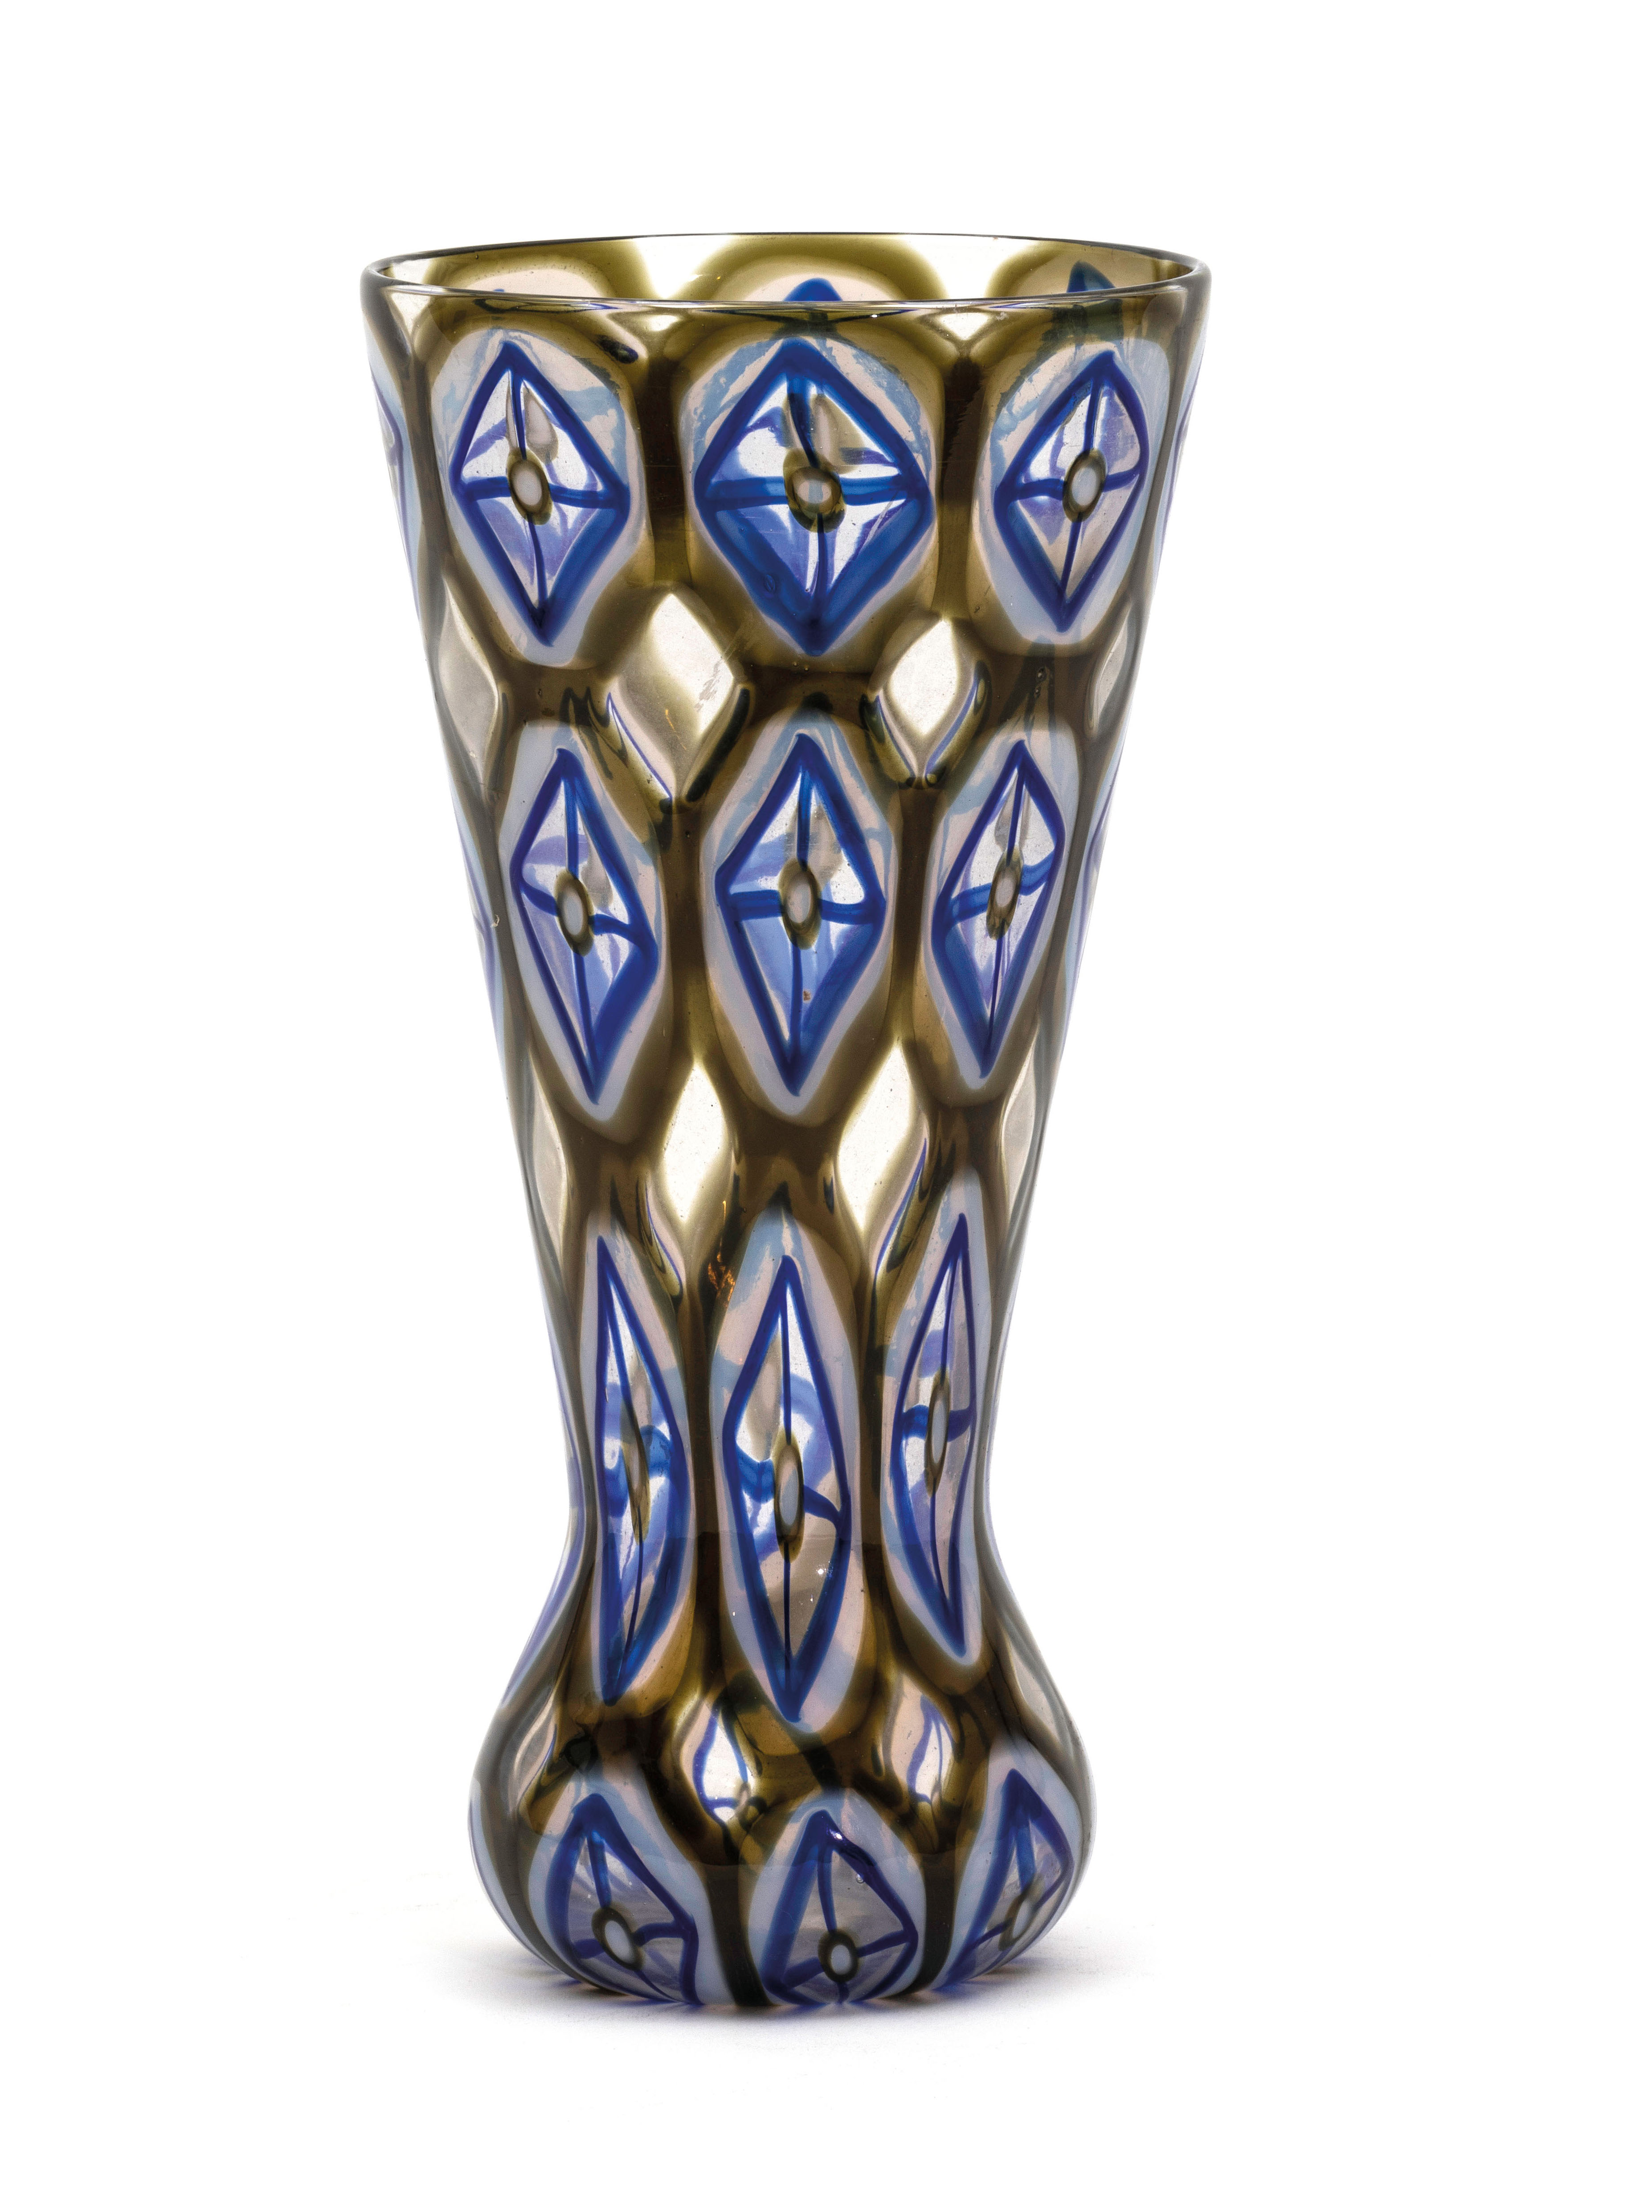 Rare oval, cone-shaped vase from the Athena Cattredrale series, Barovier & Toso